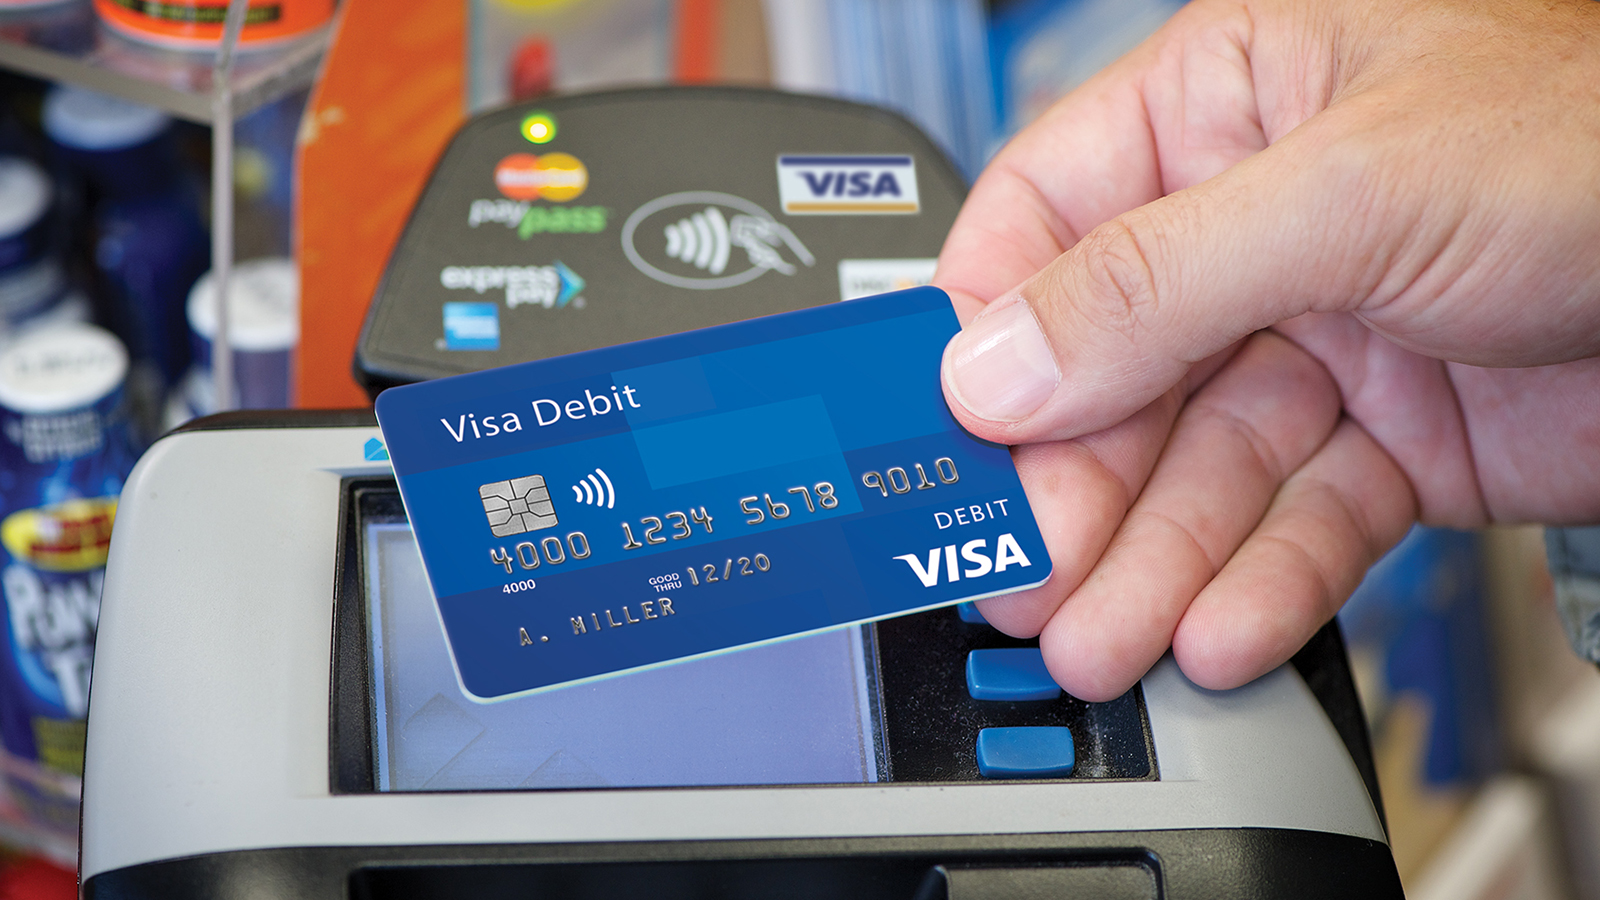 Presenting a contactless Visa debit card at checkout.